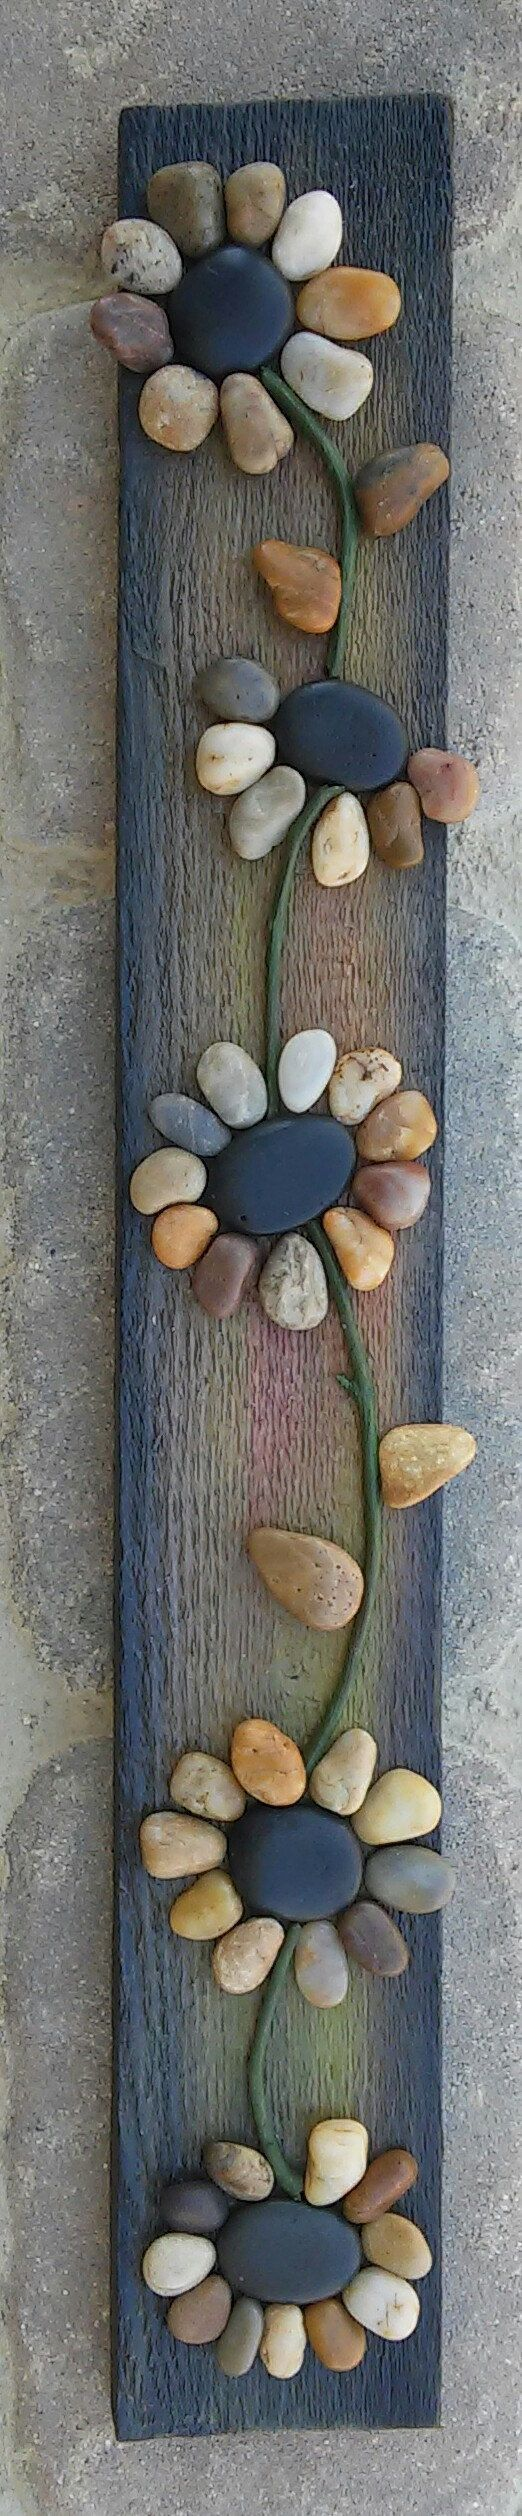 Original pebble/rock art depicting a string of flowers (all natural materials including reclaimed wood, pebbles, twigs):